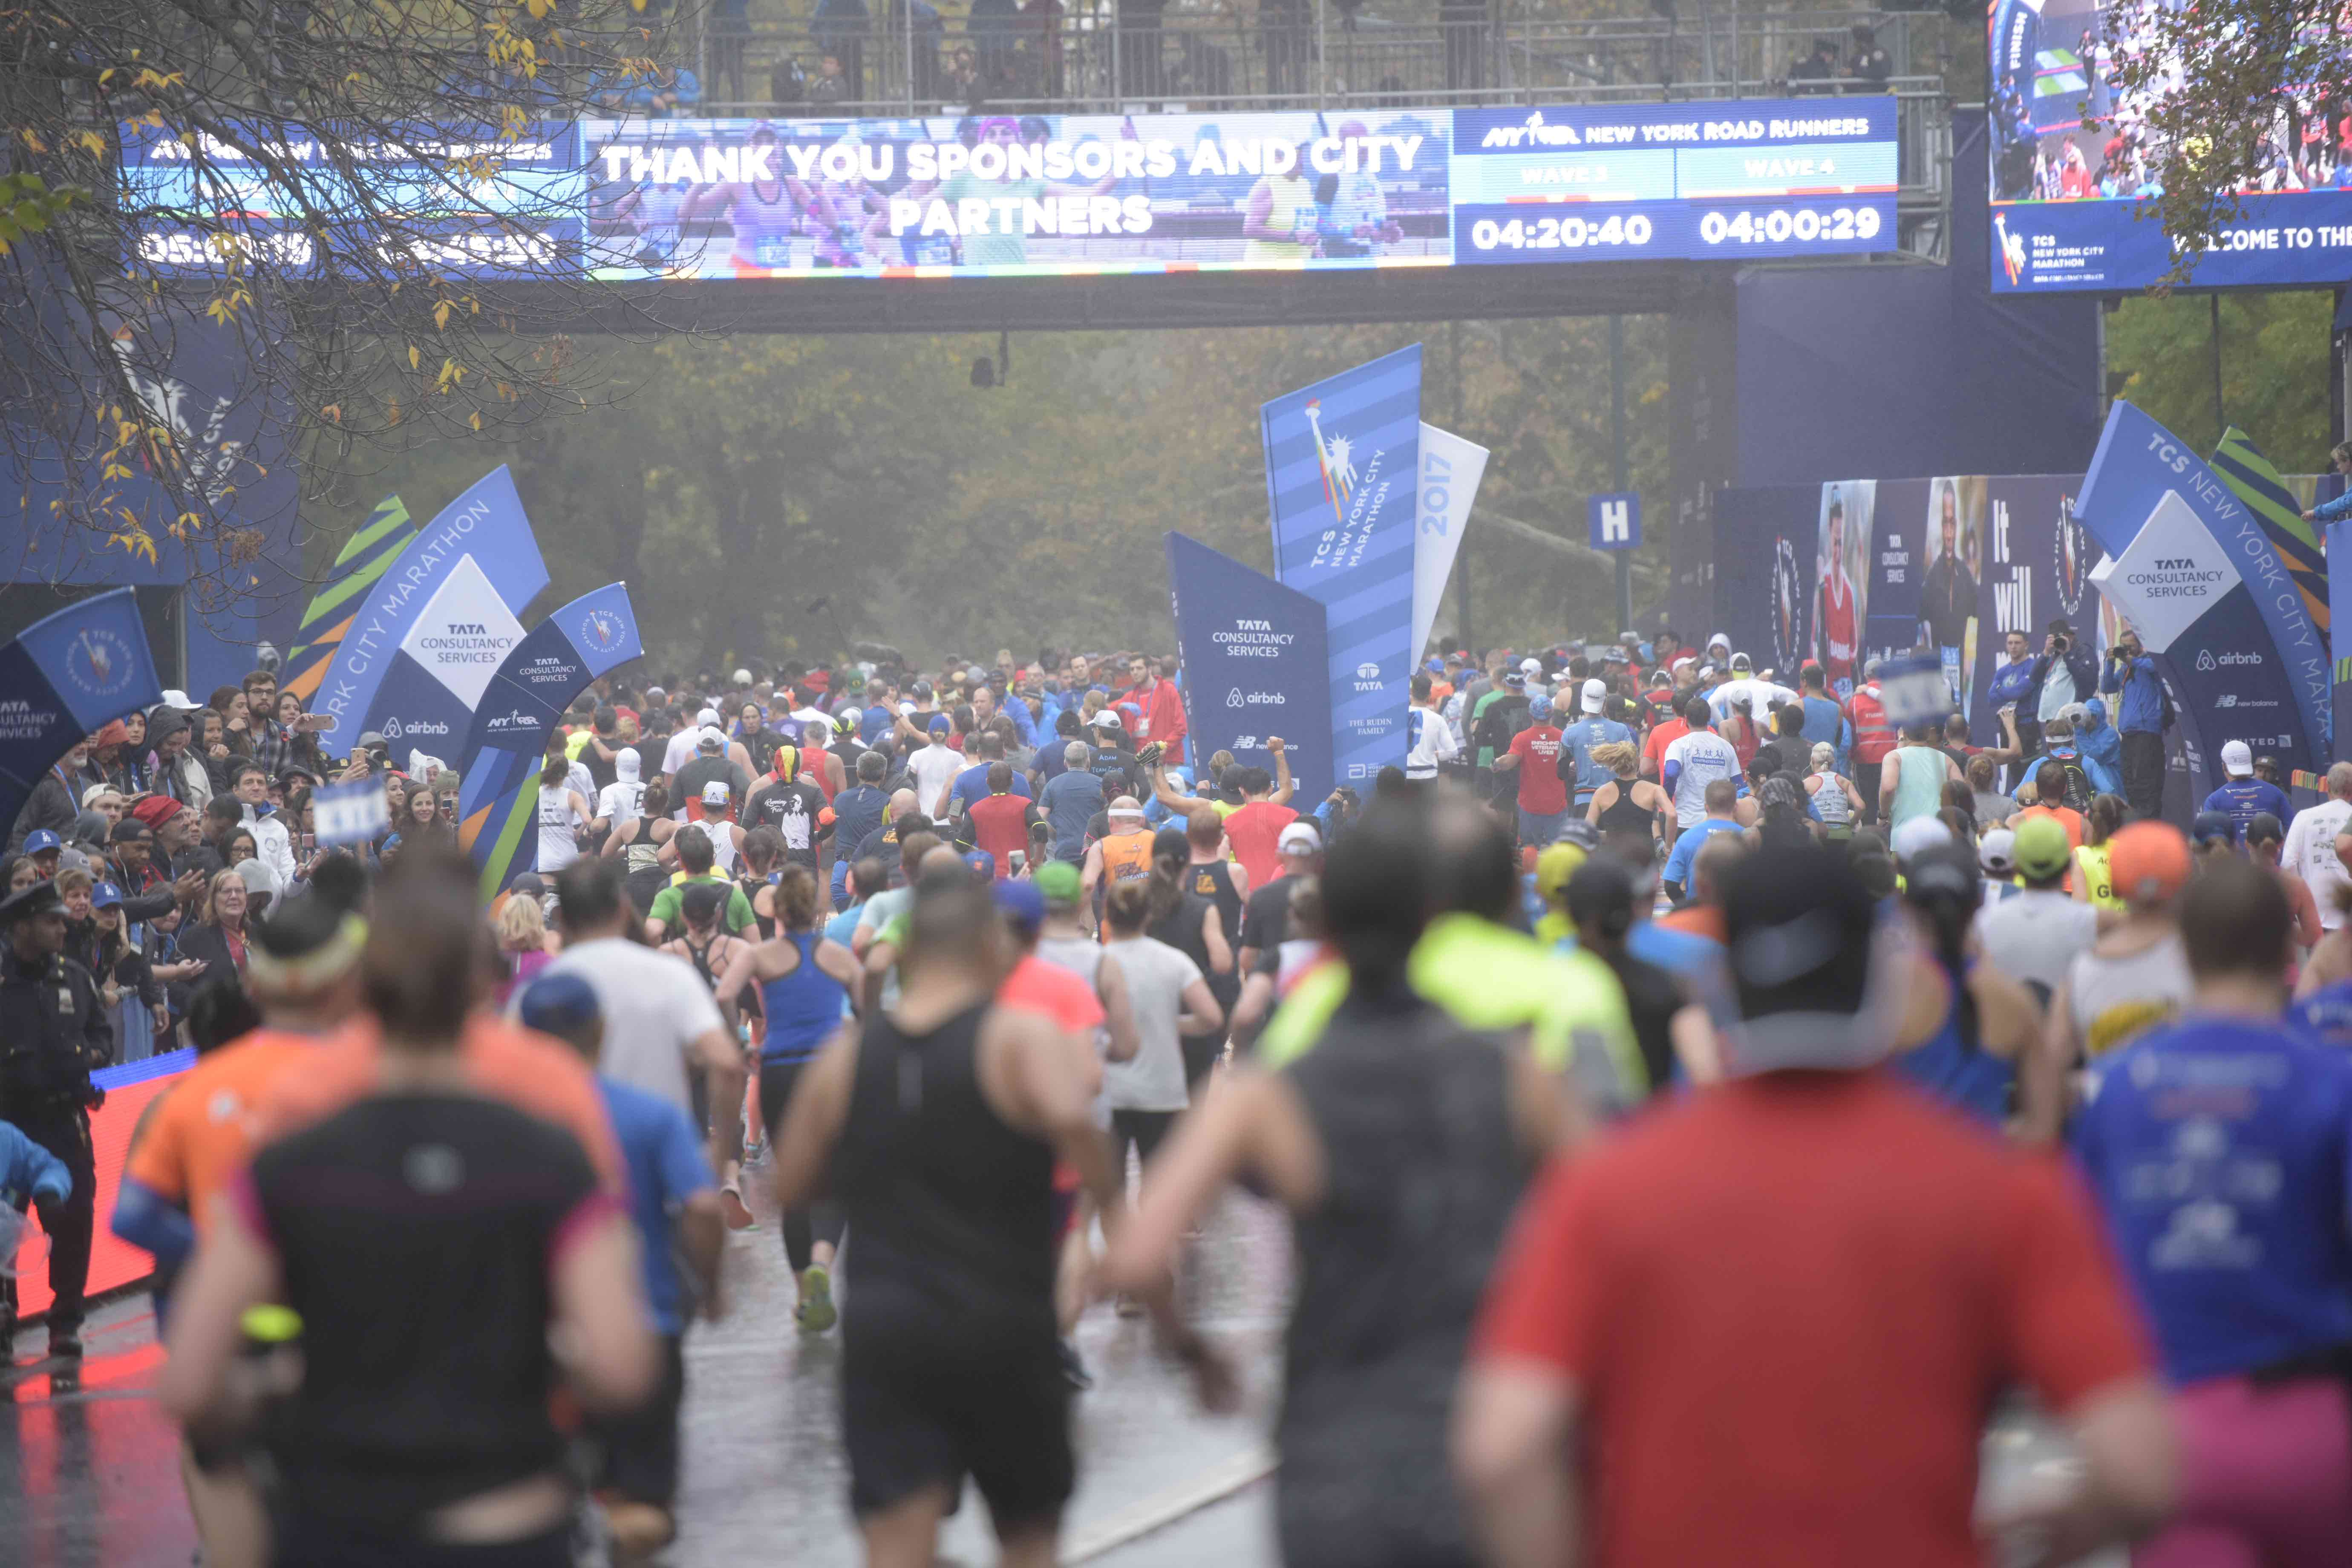 Runners approaching the finish line of the TCS New York City Marathon in Central Park